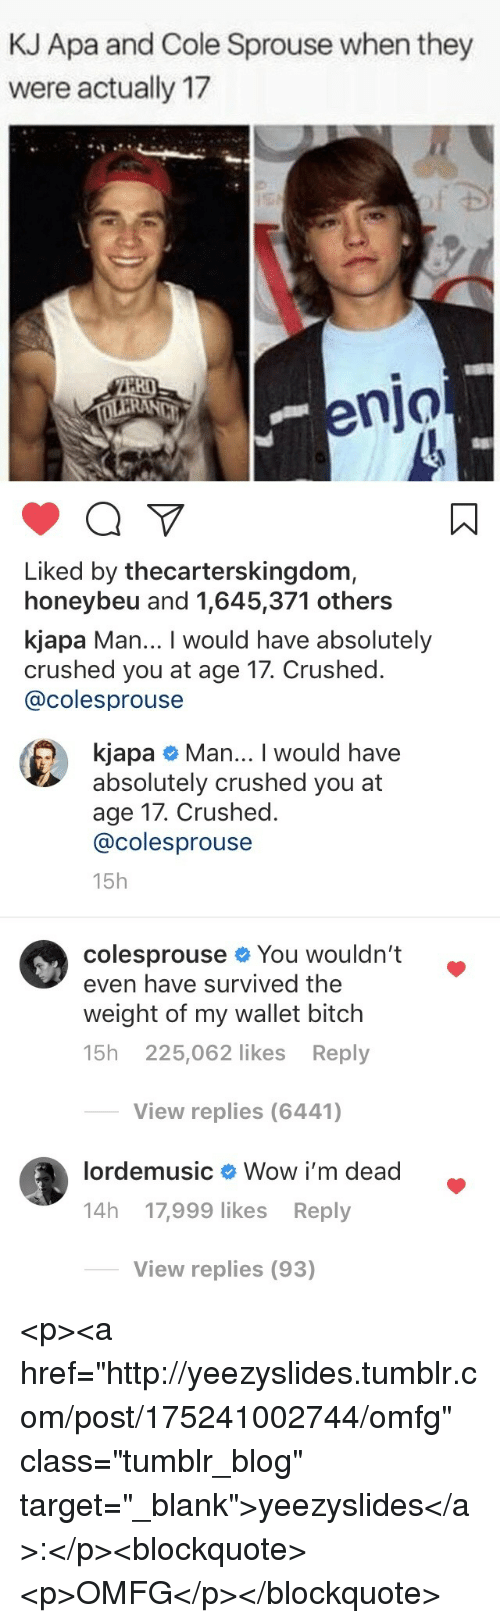 "apa: KJ Apa and Cole Sprouse when they  were actually 17  RI  enjo  Liked by thecarterskingdom,  honeybeu and 1,645,371 others  kjapa Man... I would have absolutely  crushed you at age 17. Crushed.  @colesprouse   kjapa # Man I would have  absolutely crushed you at  age 17. Crushed.  @colesprouse  15h  colesprouse You wouldn't .  even have survived the  weight of my wallet bitch  15h 225,062 likes Reply  View replies (6441)  lordemusic  Wow i'm dead  14h 17,999 likes Reply  View replies (93) <p><a href=""http://yeezyslides.tumblr.com/post/175241002744/omfg"" class=""tumblr_blog"" target=""_blank"">yeezyslides</a>:</p><blockquote><p>OMFG</p></blockquote>"